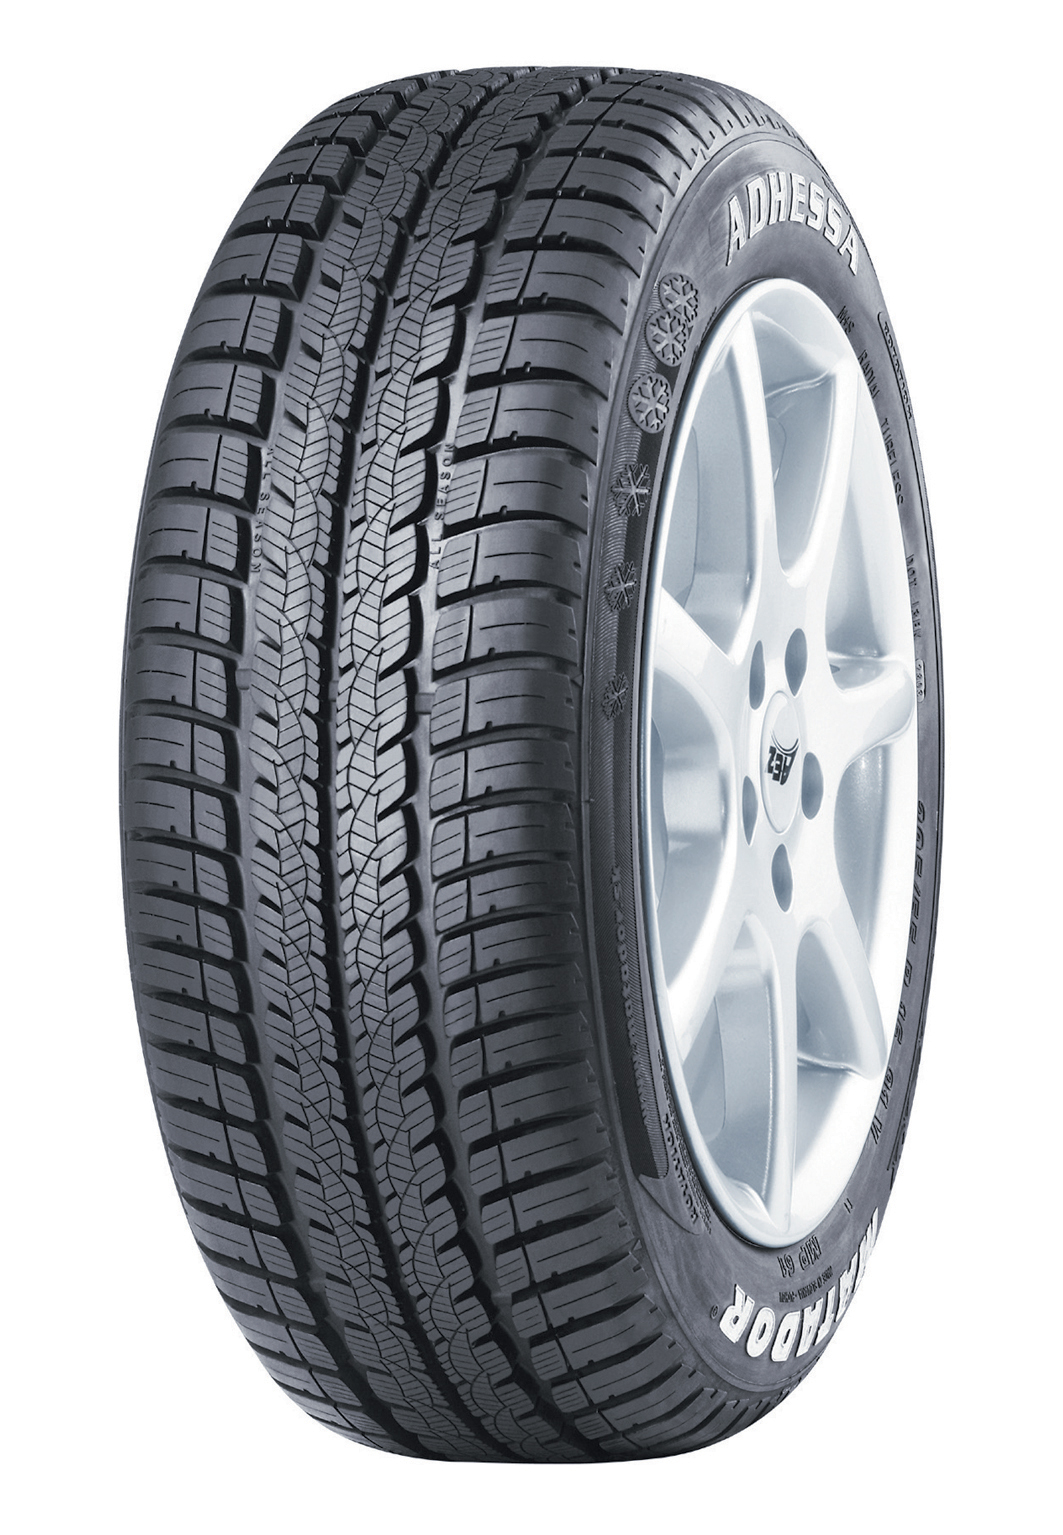 Anvelopa all seasons MATADOR Adhessa m+s 175/65 R14 82H